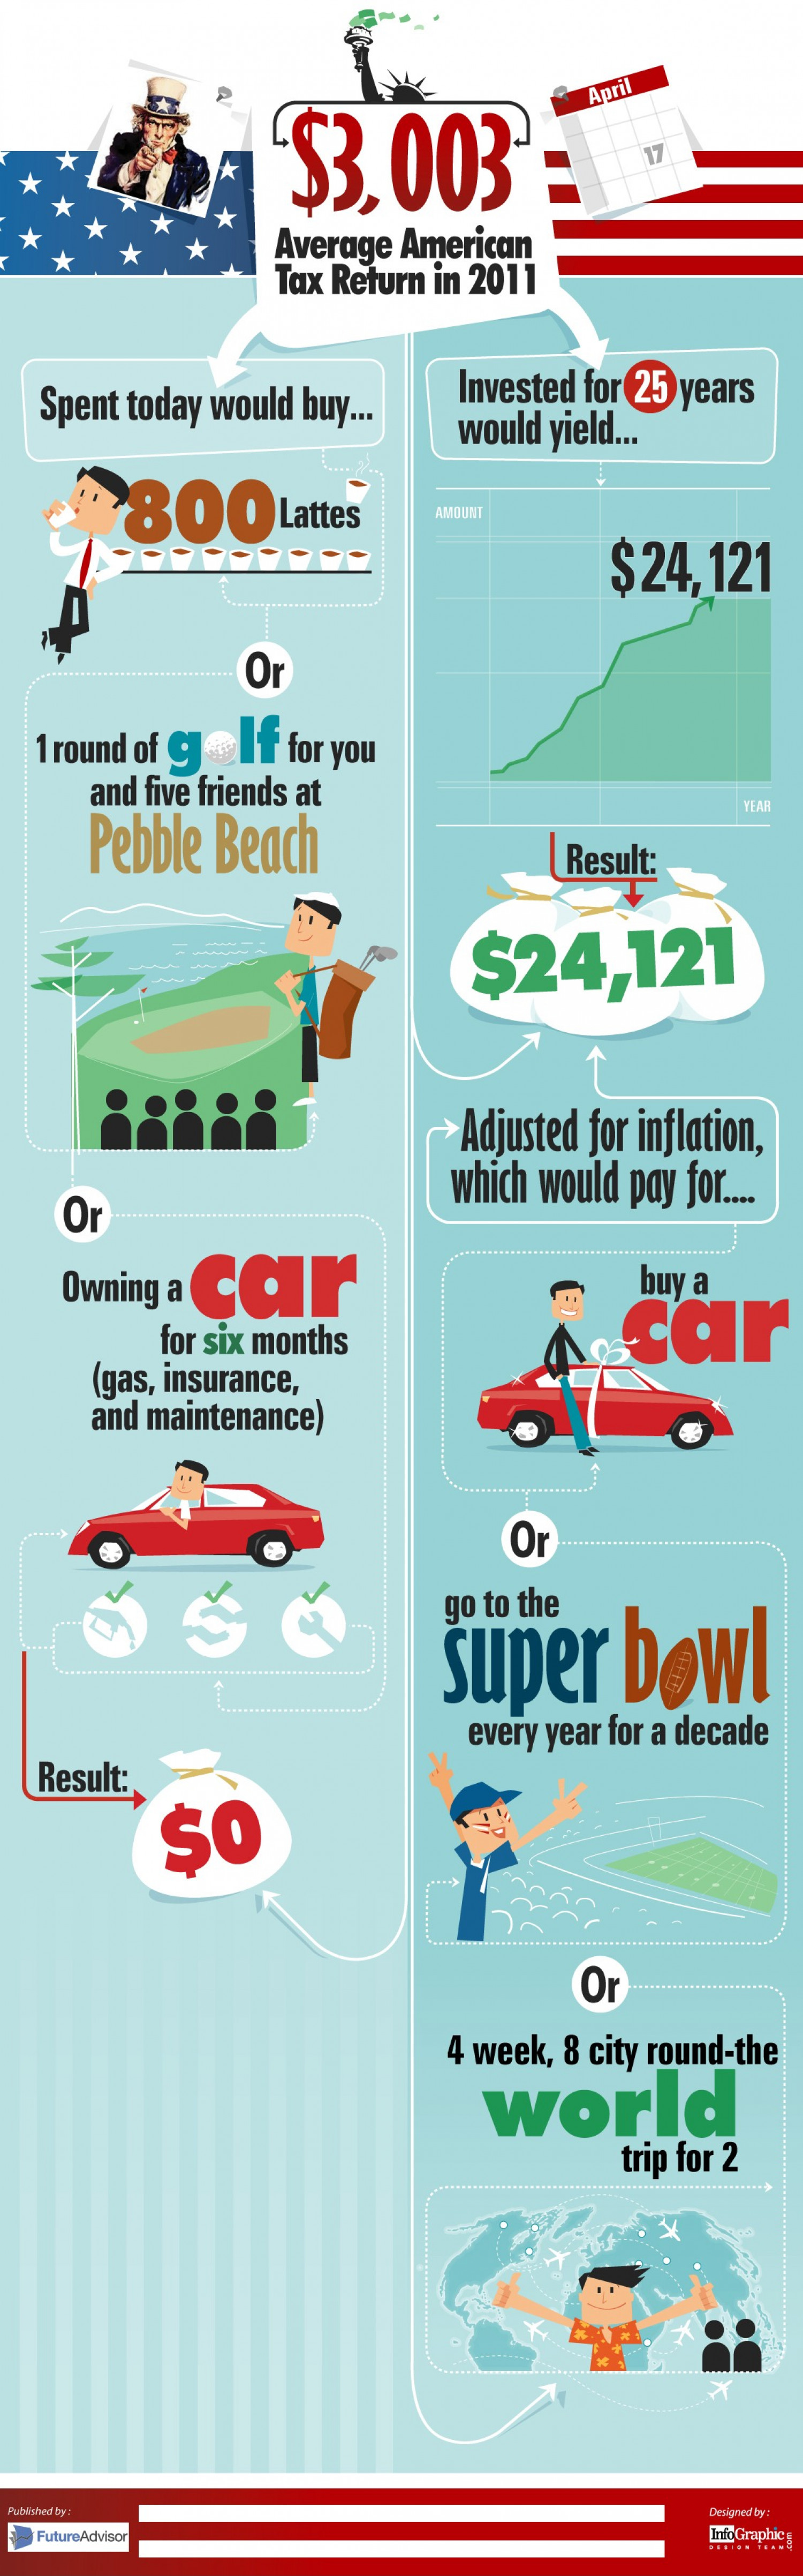 Invest Your Tax Refund Infographic